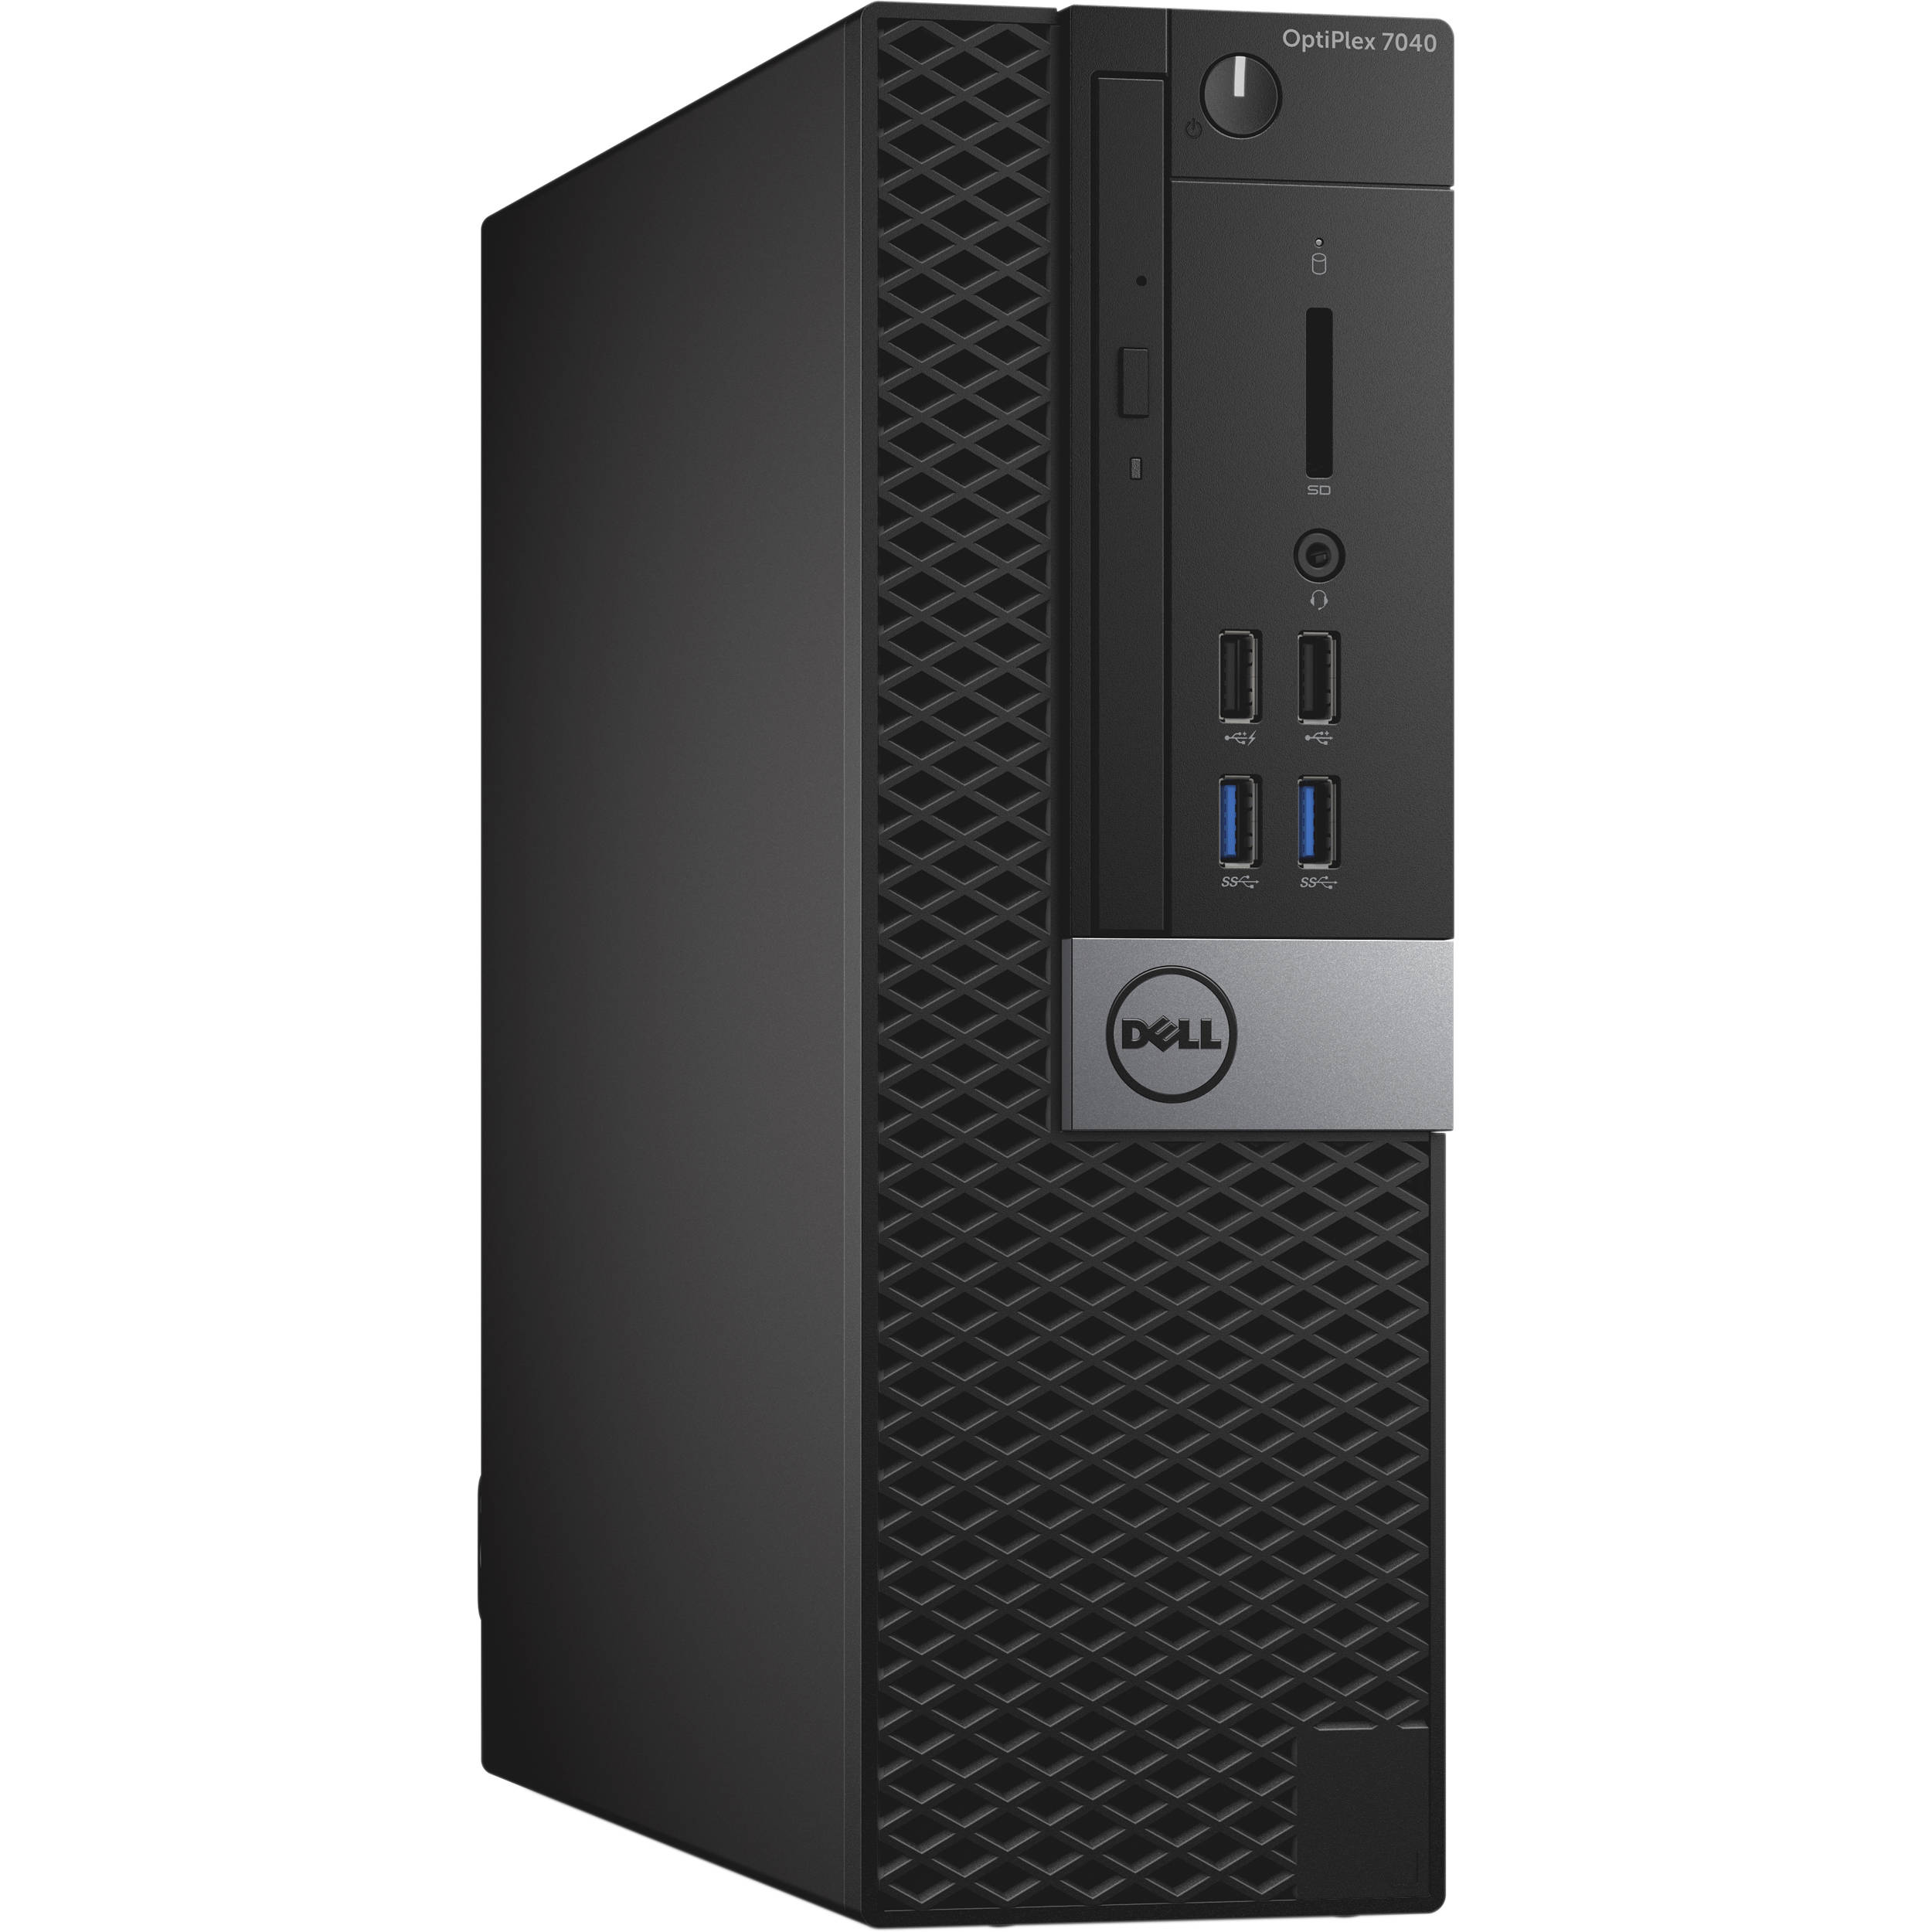 Dell Optiplex 7040 SFF Windows 7 Pro